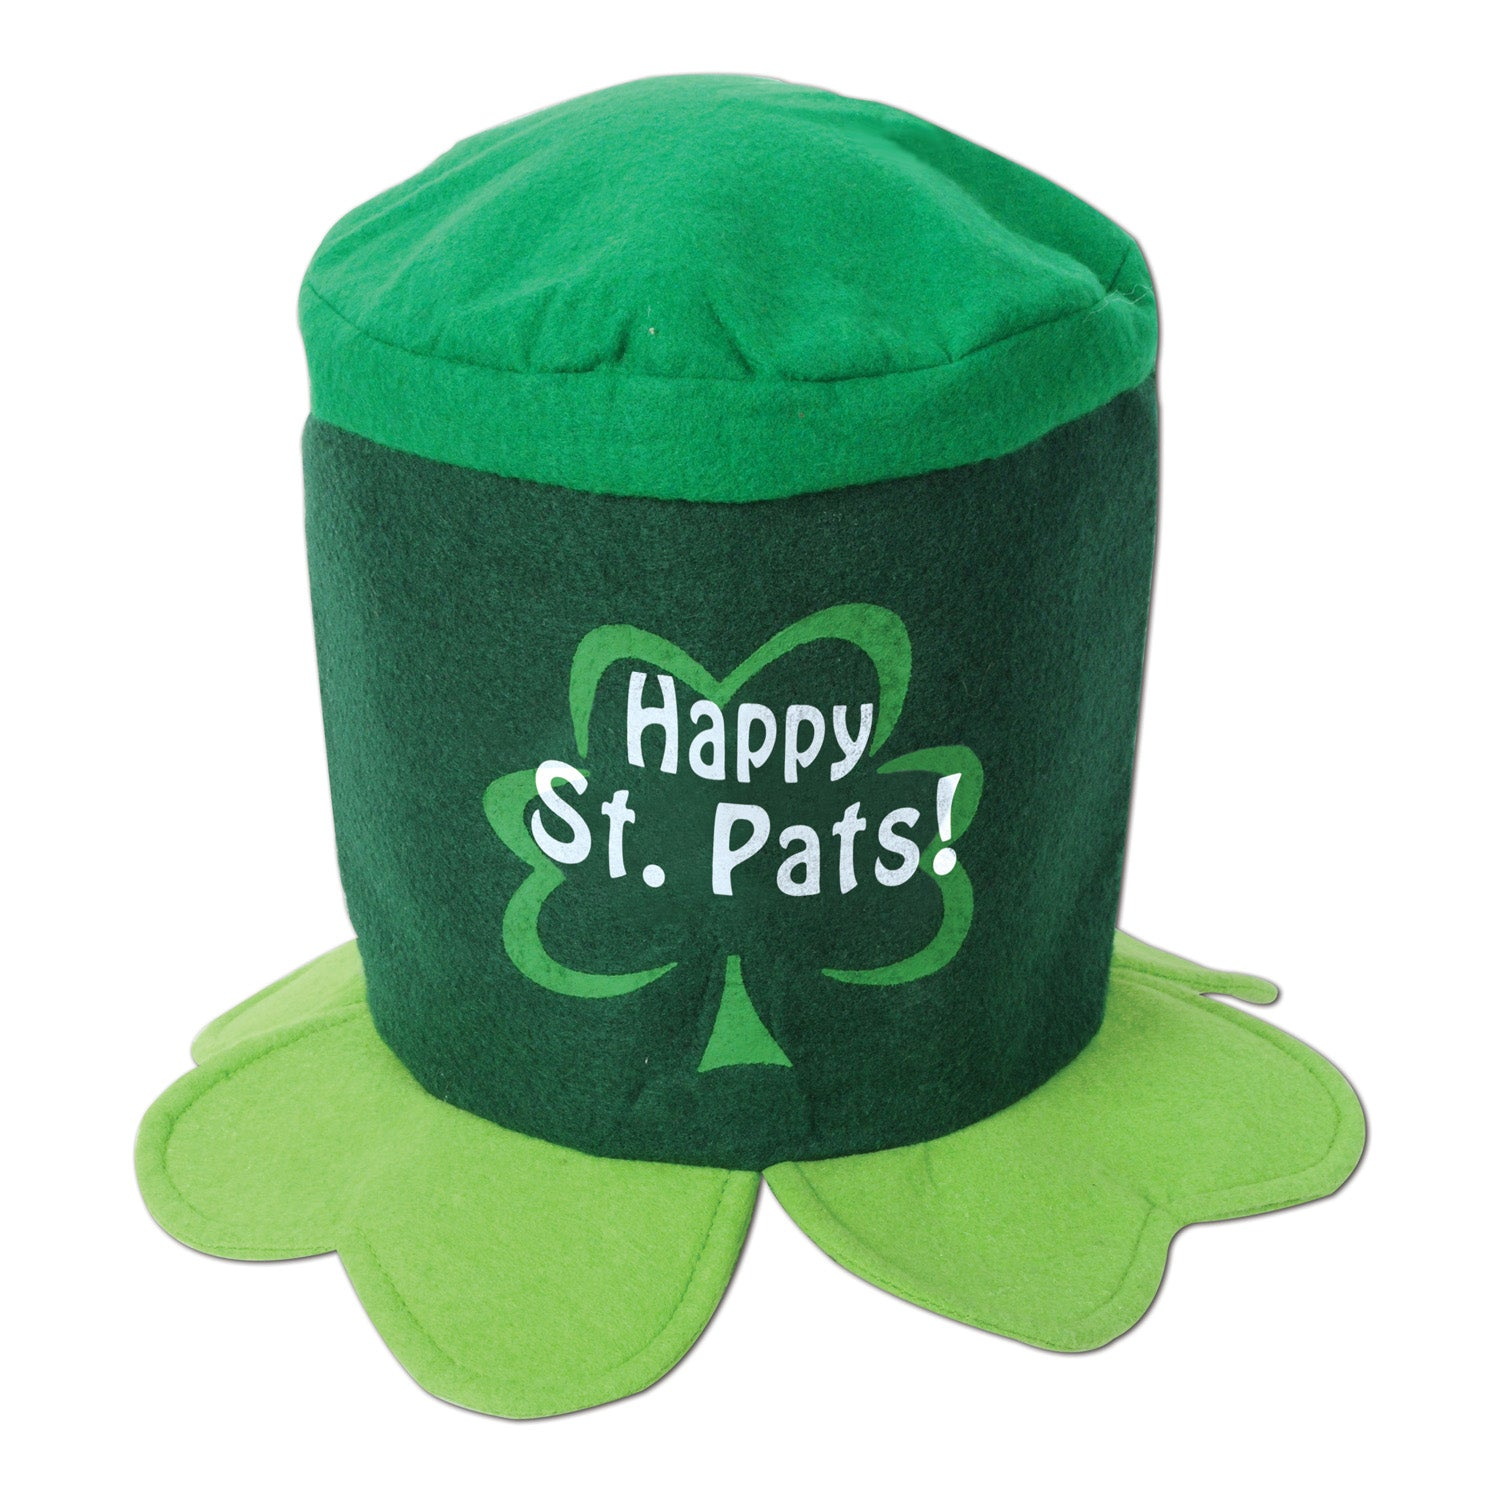 Happy St Pat's! Hat by Beistle - St. Patricks Day Theme Decorations